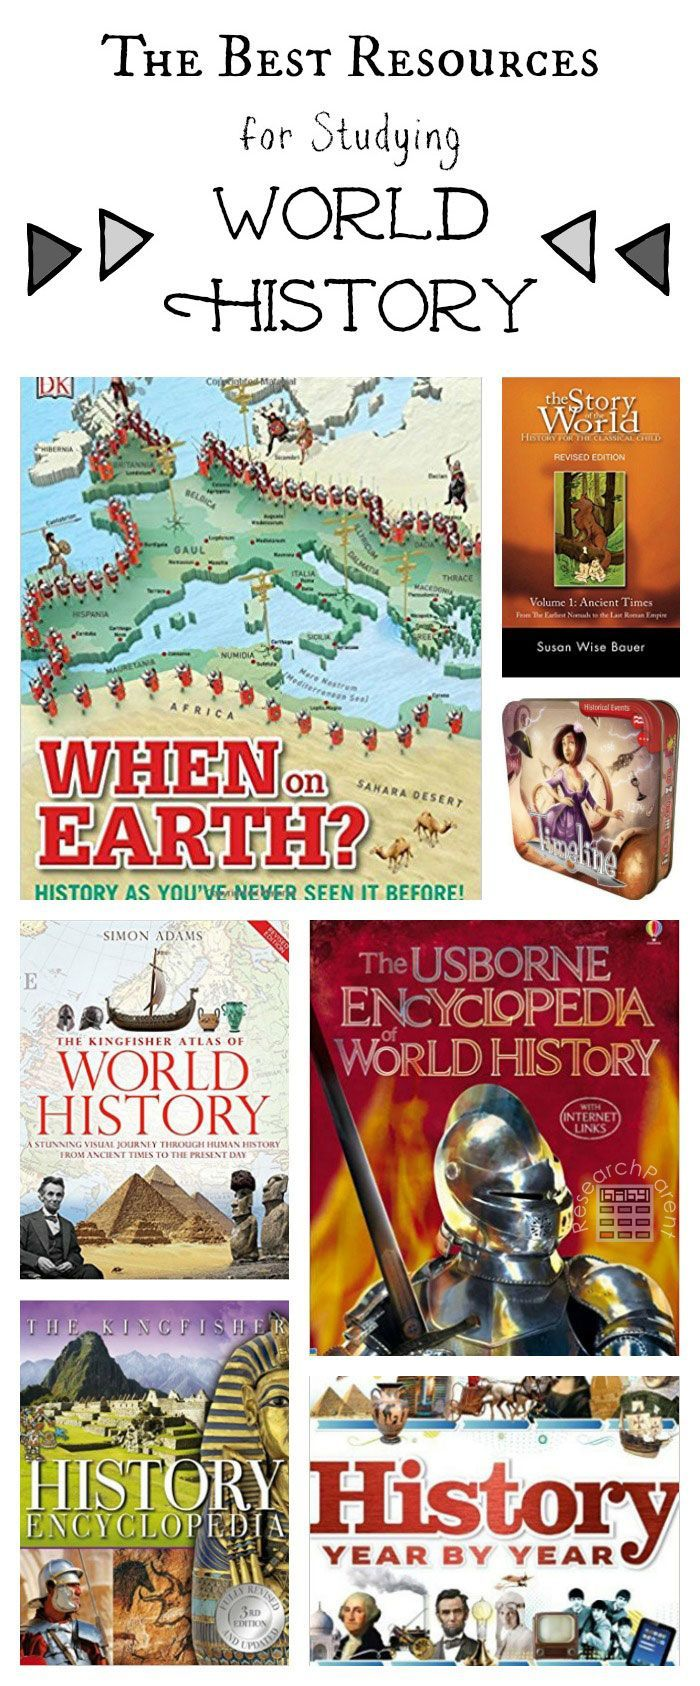 Best Resources for Studying Ancient Egypt - Ever-growing list containing several of the best books, games, and media for a wide variety of age ranges including elementary and middle school. via @researchparent